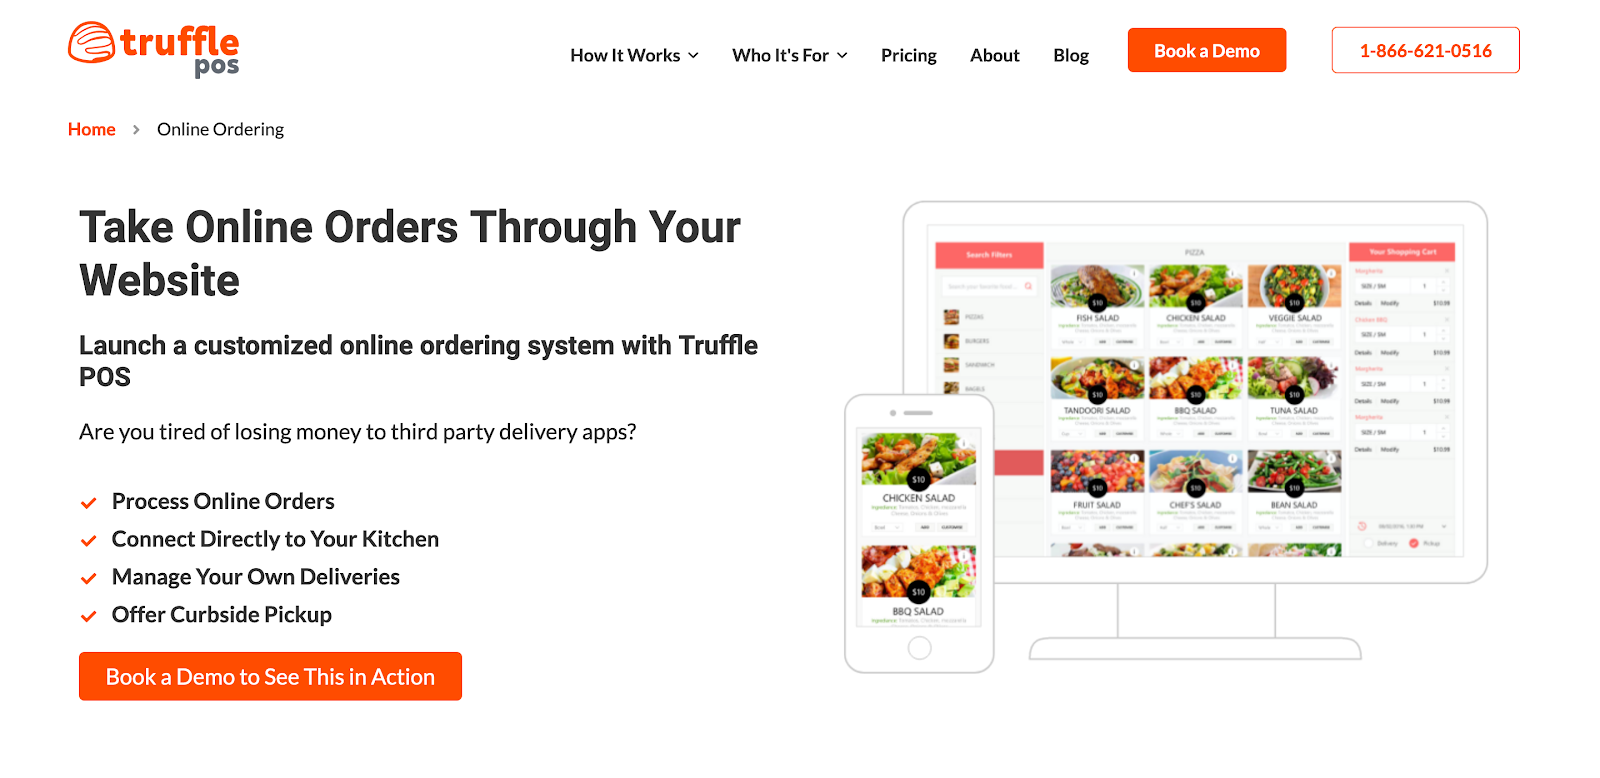 Truffle POS: Take Online Orders Through Your Website